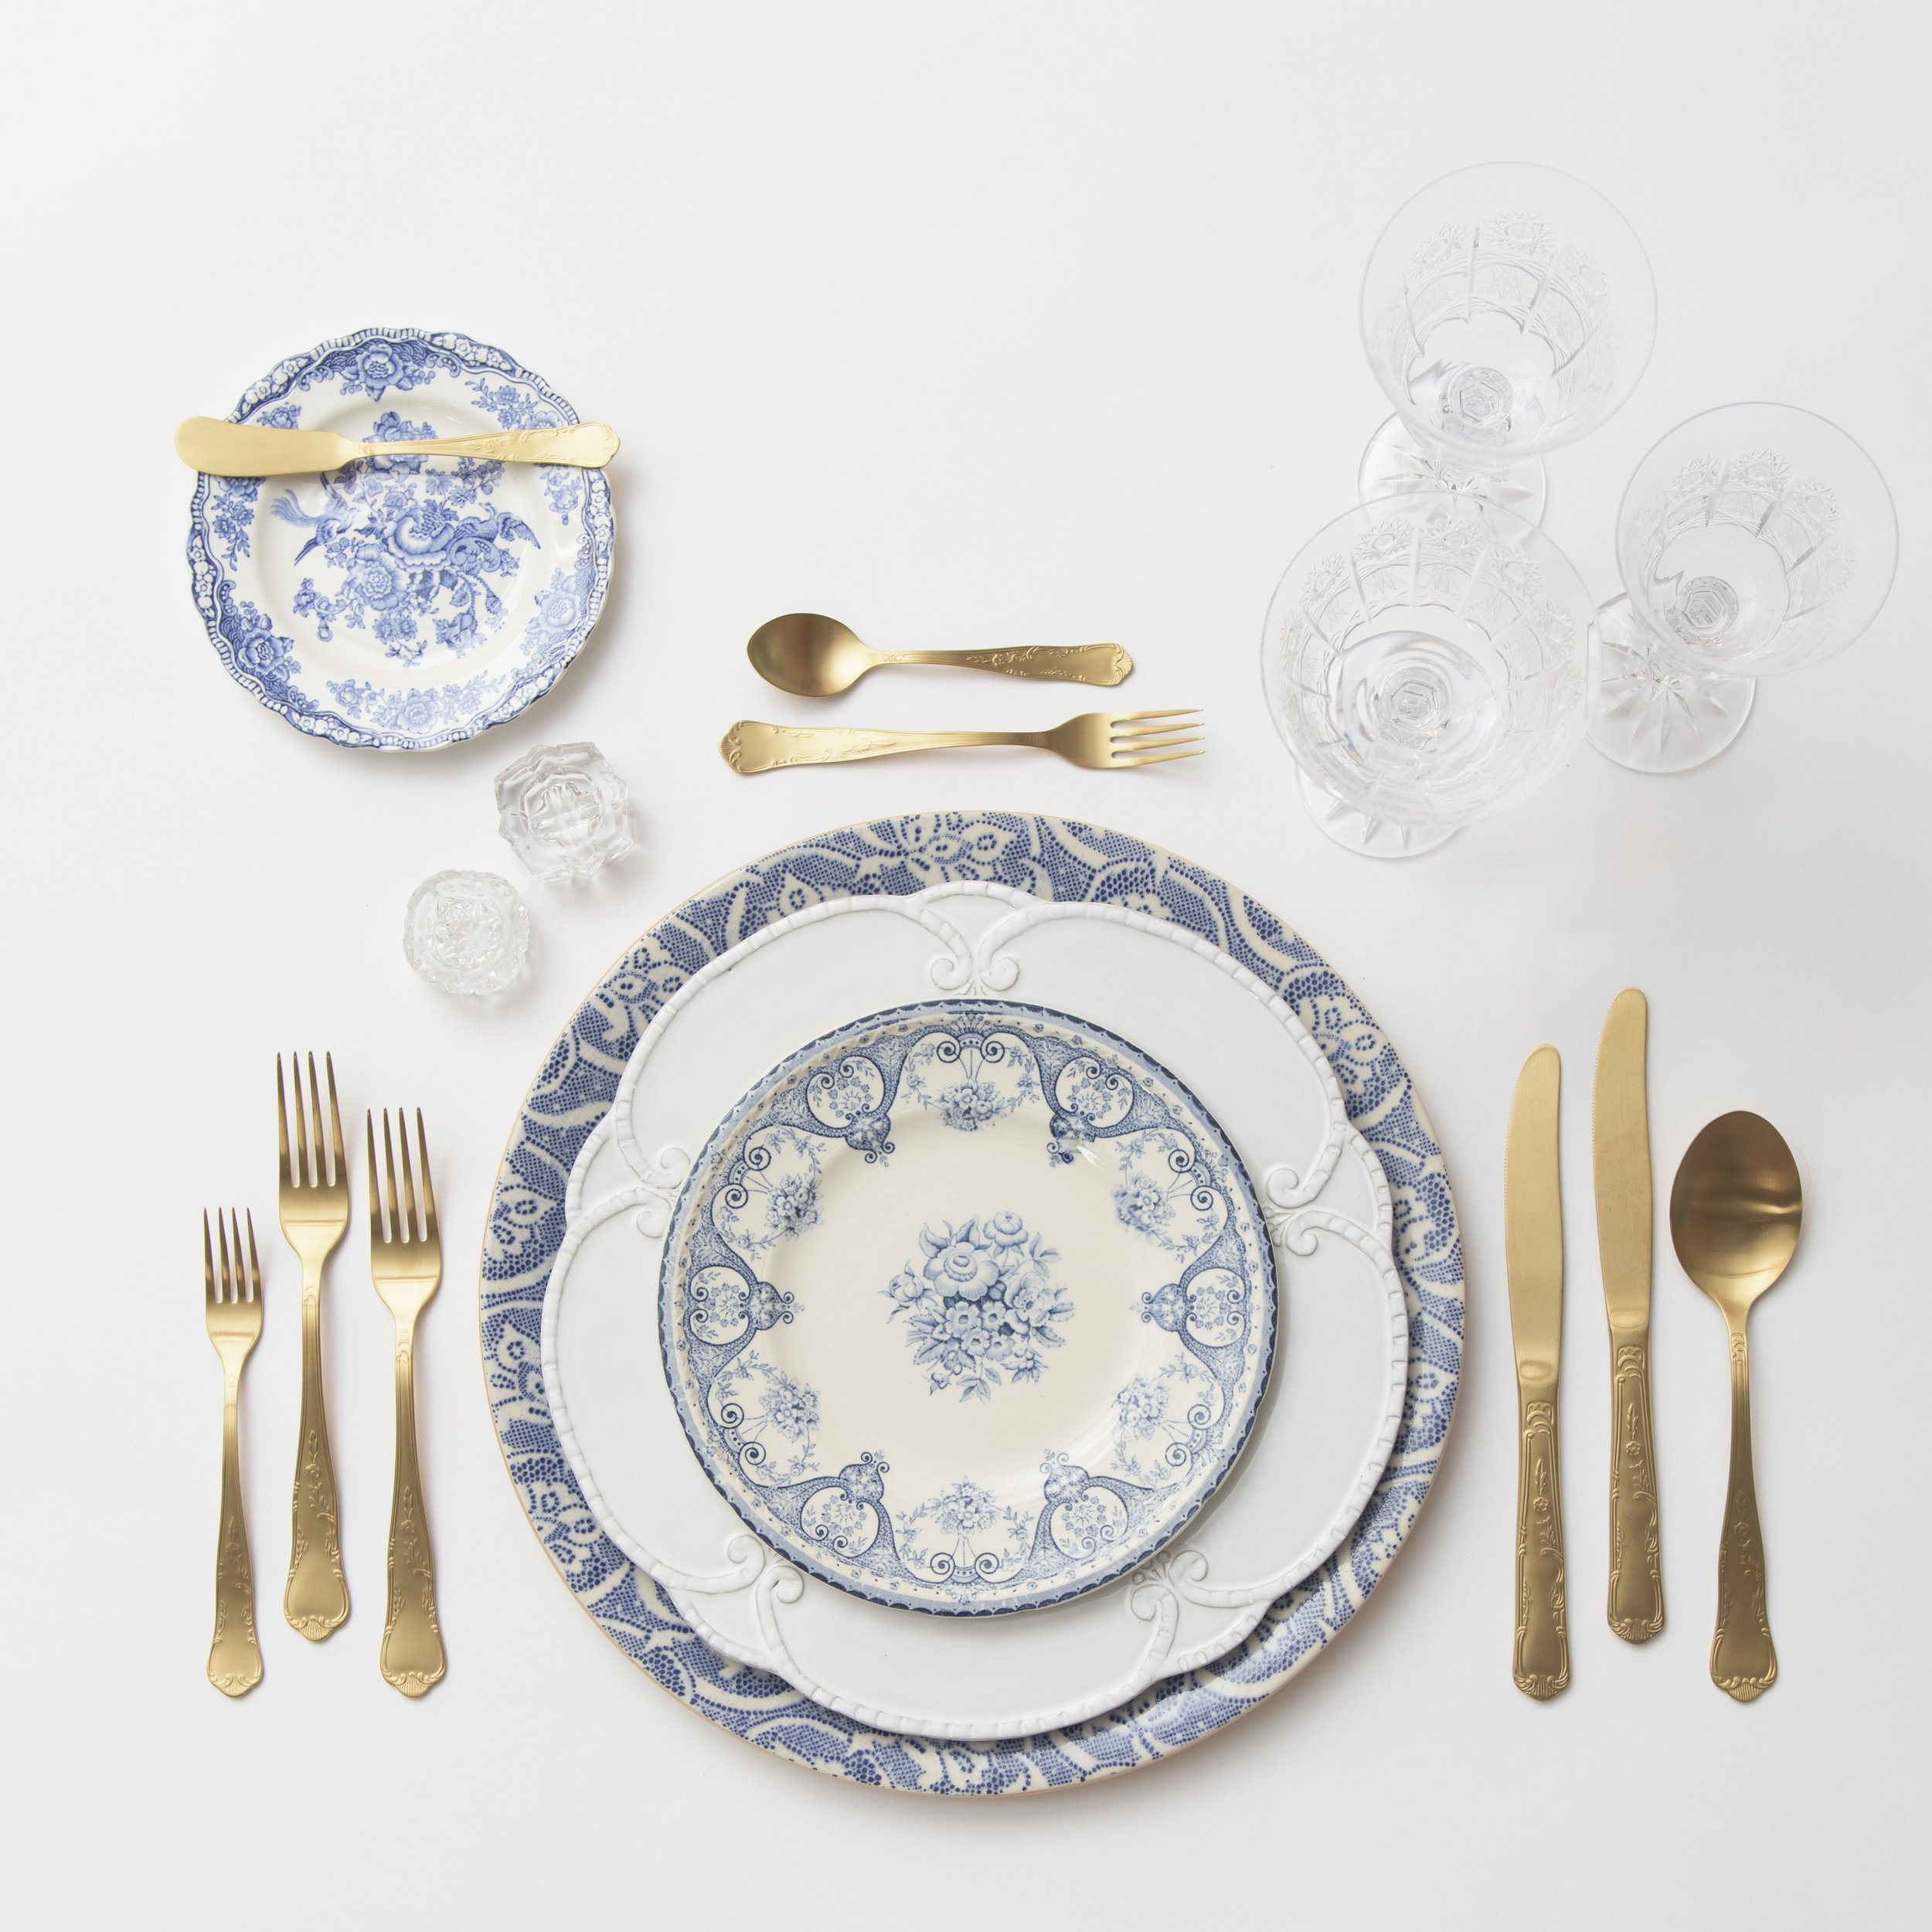 RENT: Blue Fleur de Lis Chargers + Signature Collection Dinnerware + Blue Garden Collection Vintage China + Chateau Flatware in Matte Gold + Czech Crystal Stemware + Antique Crystal Salt Cellars